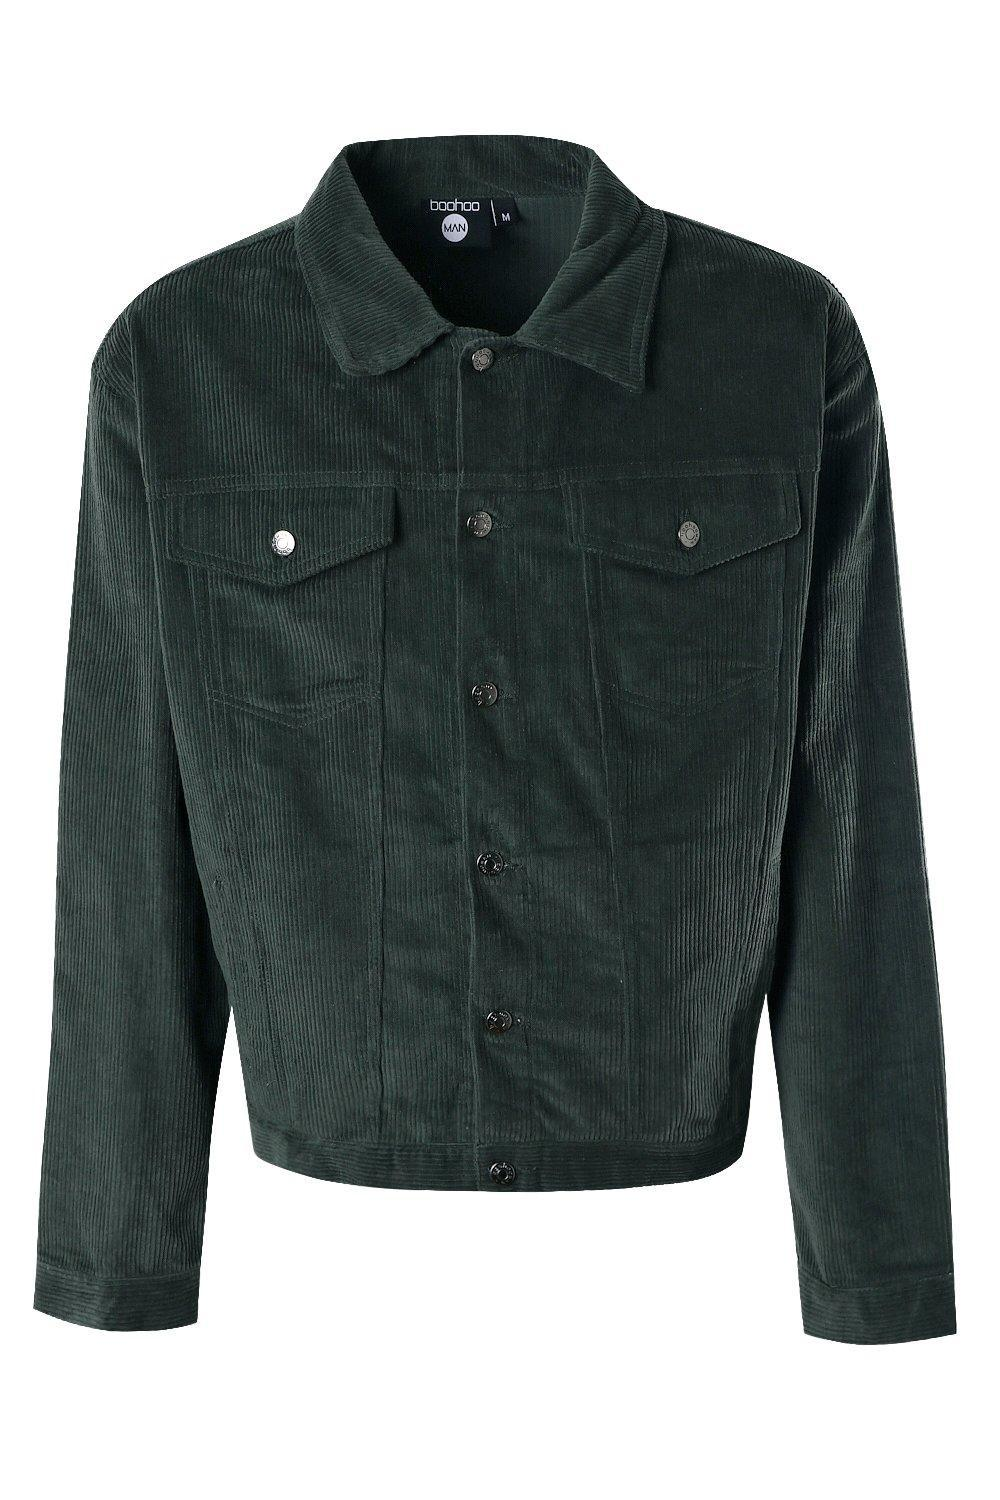 BoohooMAN Denim Oversized Cord Western Jacket in Forest (Green) for Men